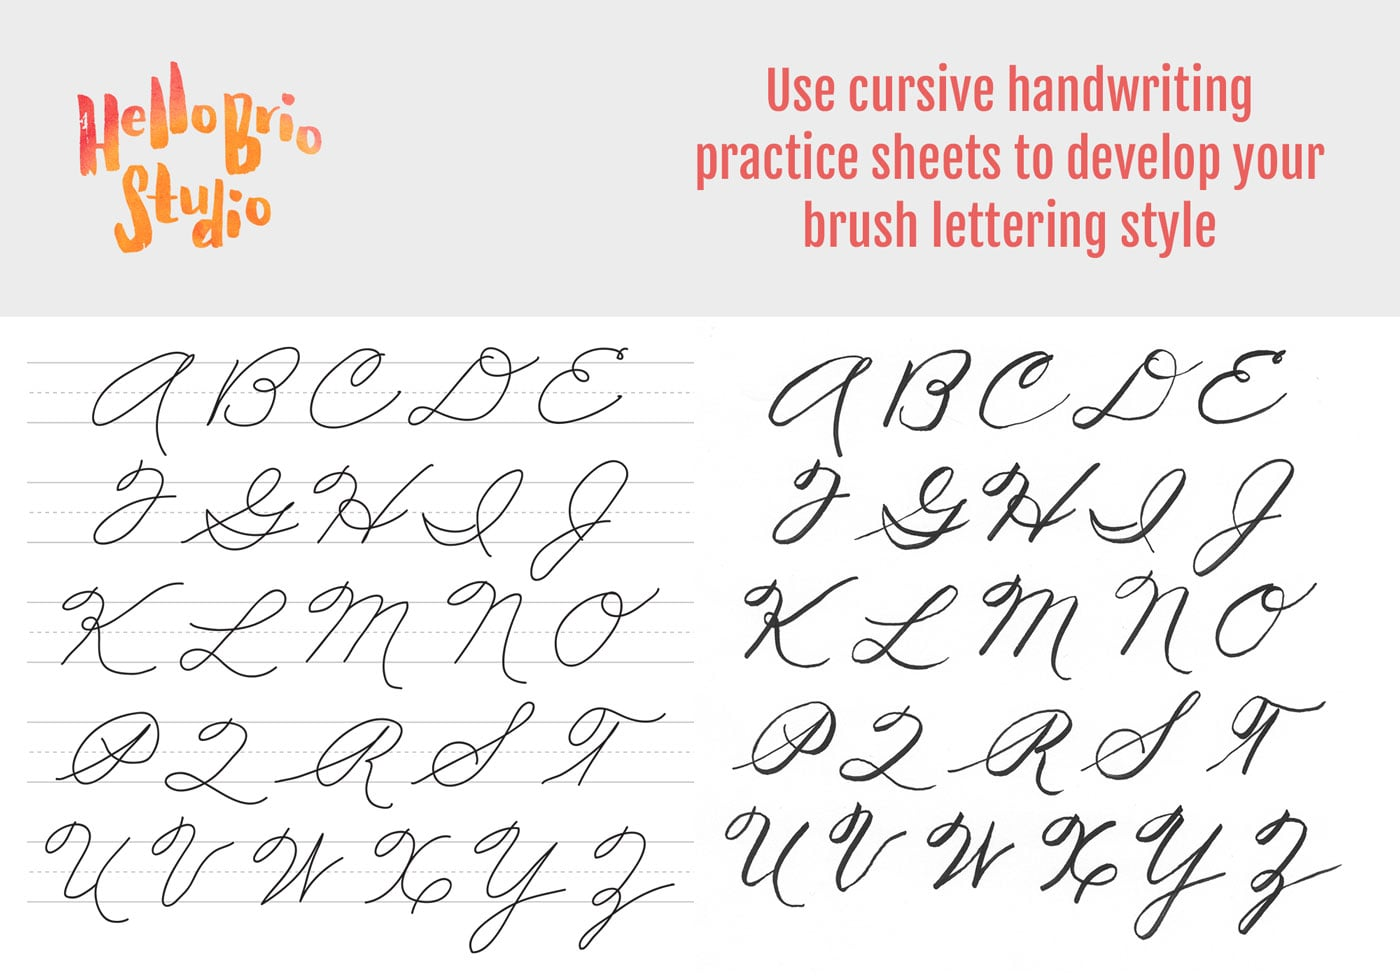 Practice brush lettering with cursive handwriting worksheets Hello